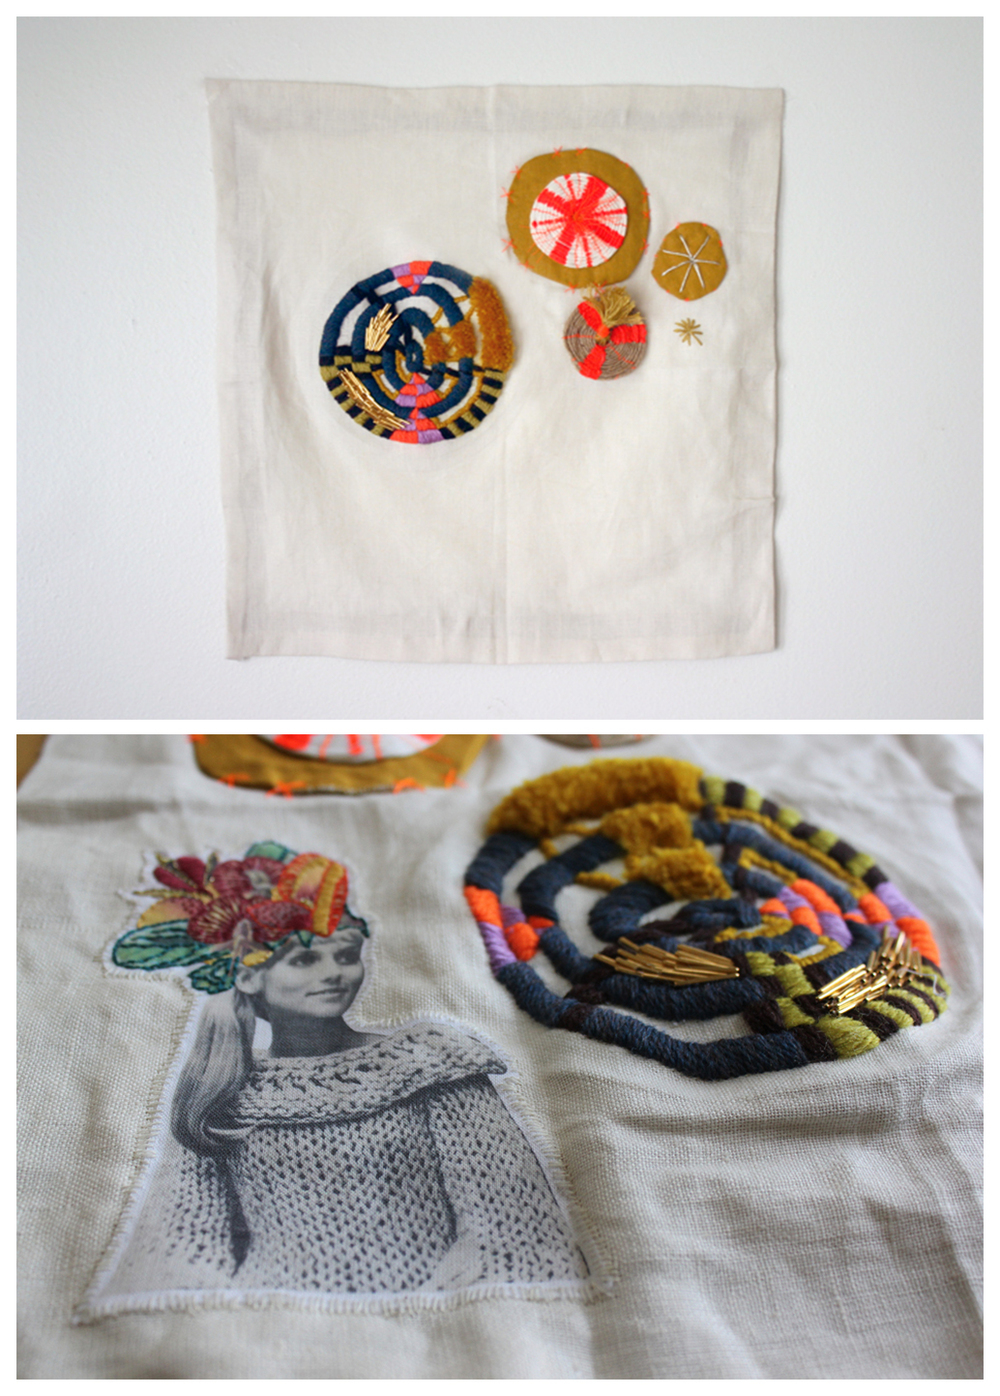 Embroidery Collaboration